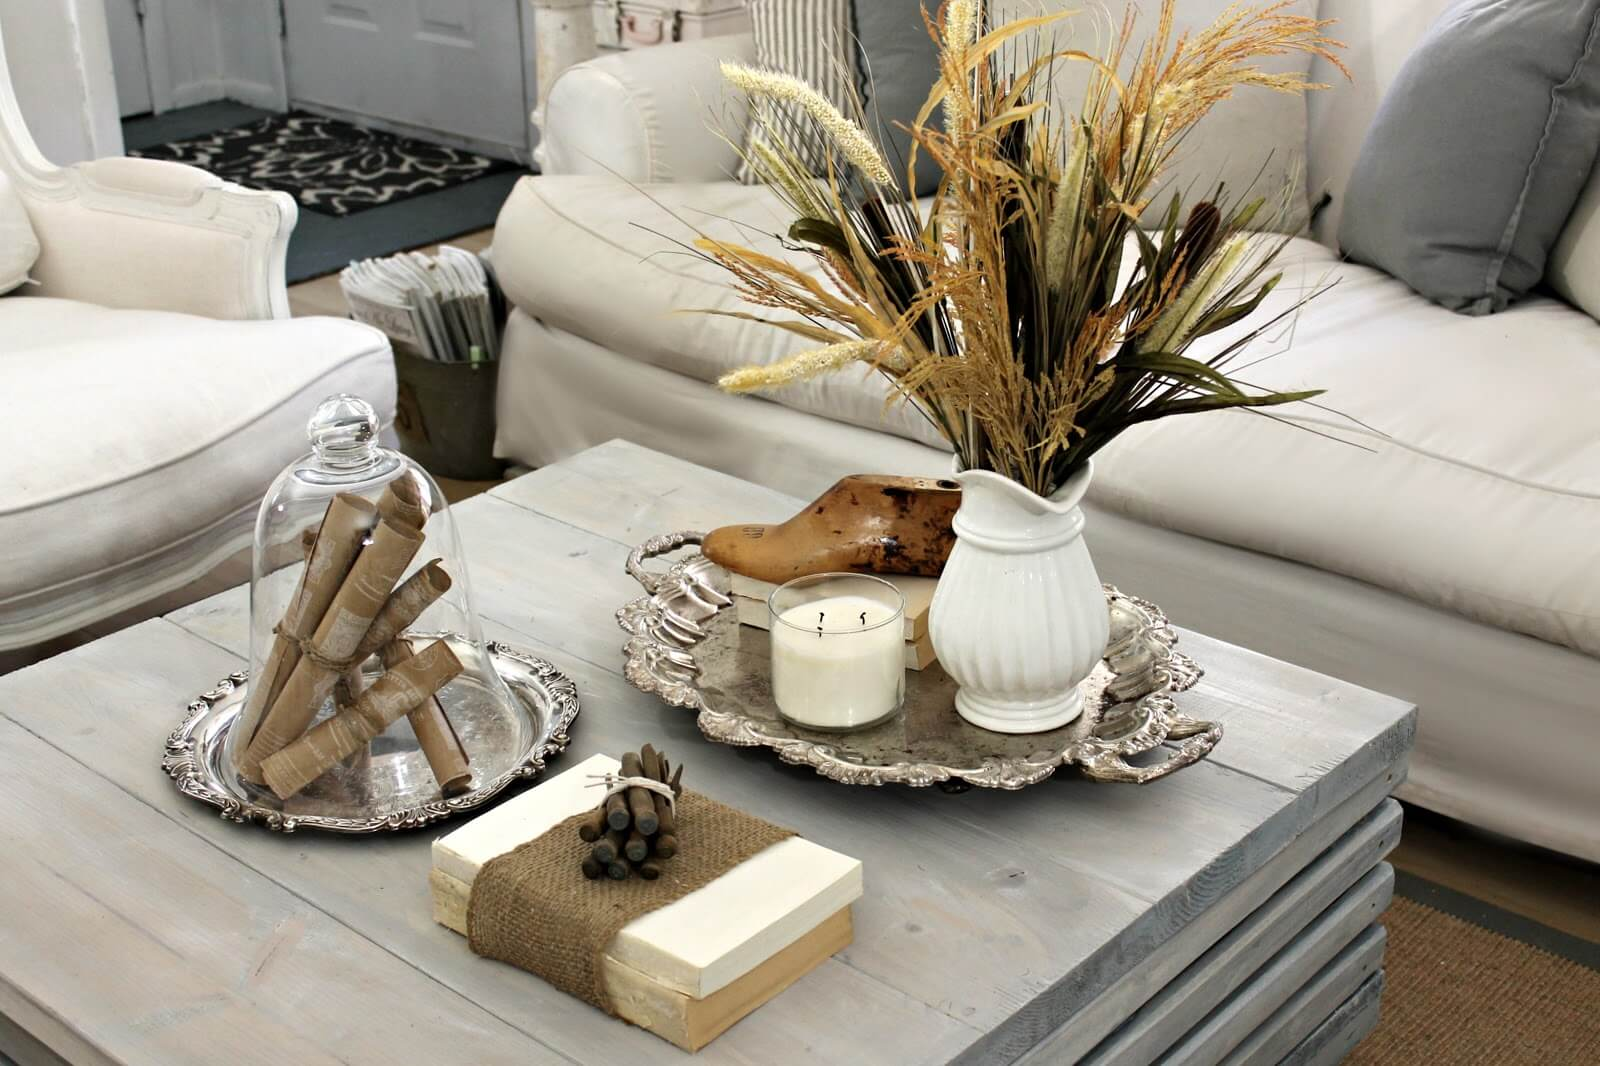 best coffee table decorating ideas and designs for homebnc small silver accent earth toned brown white natural element display with accents vintage cut crystal lamp mission cane